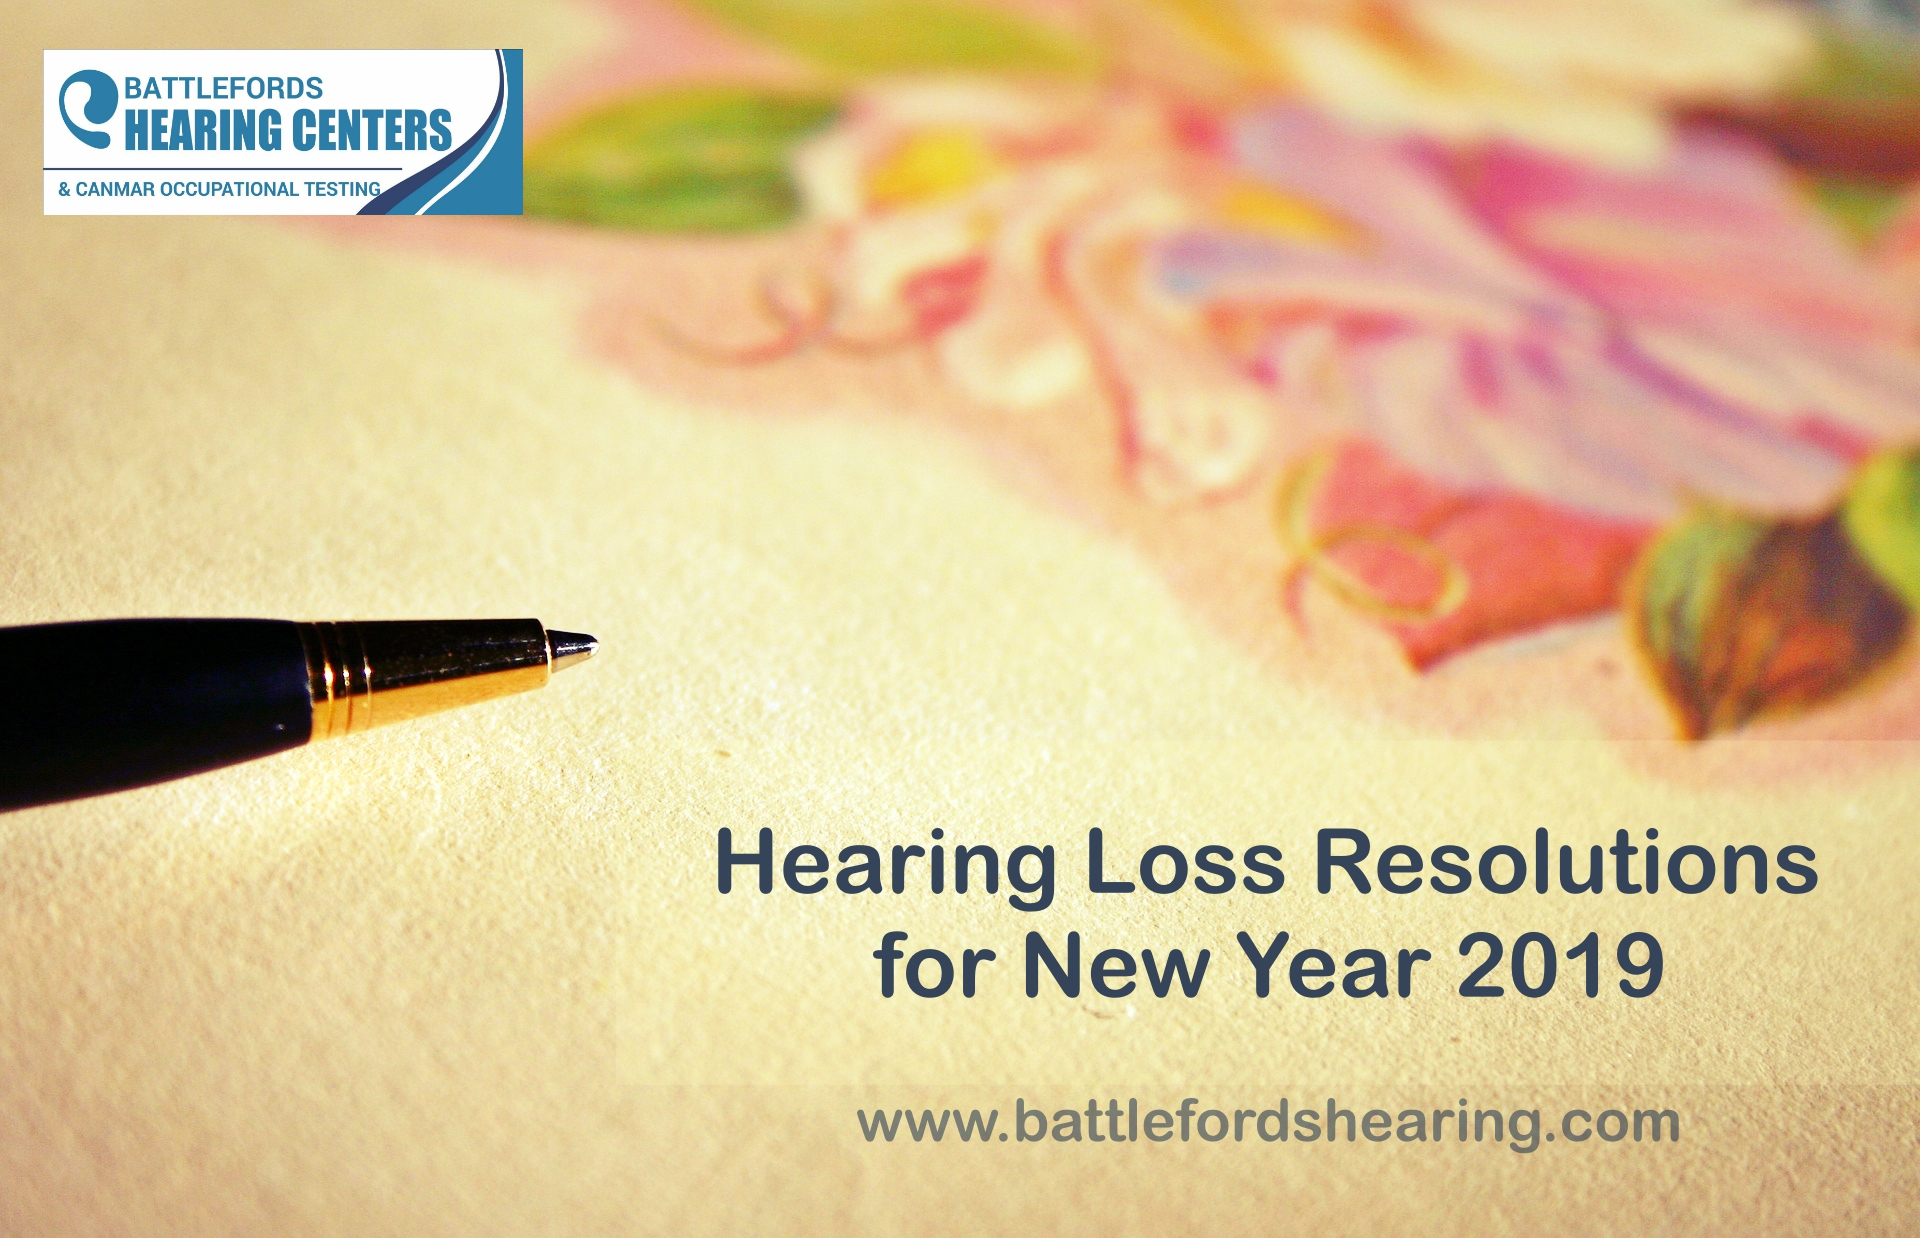 New Year, New You!  Top 5 Healthy Hearing Resolutions to Welcome NEW YEAR 2019